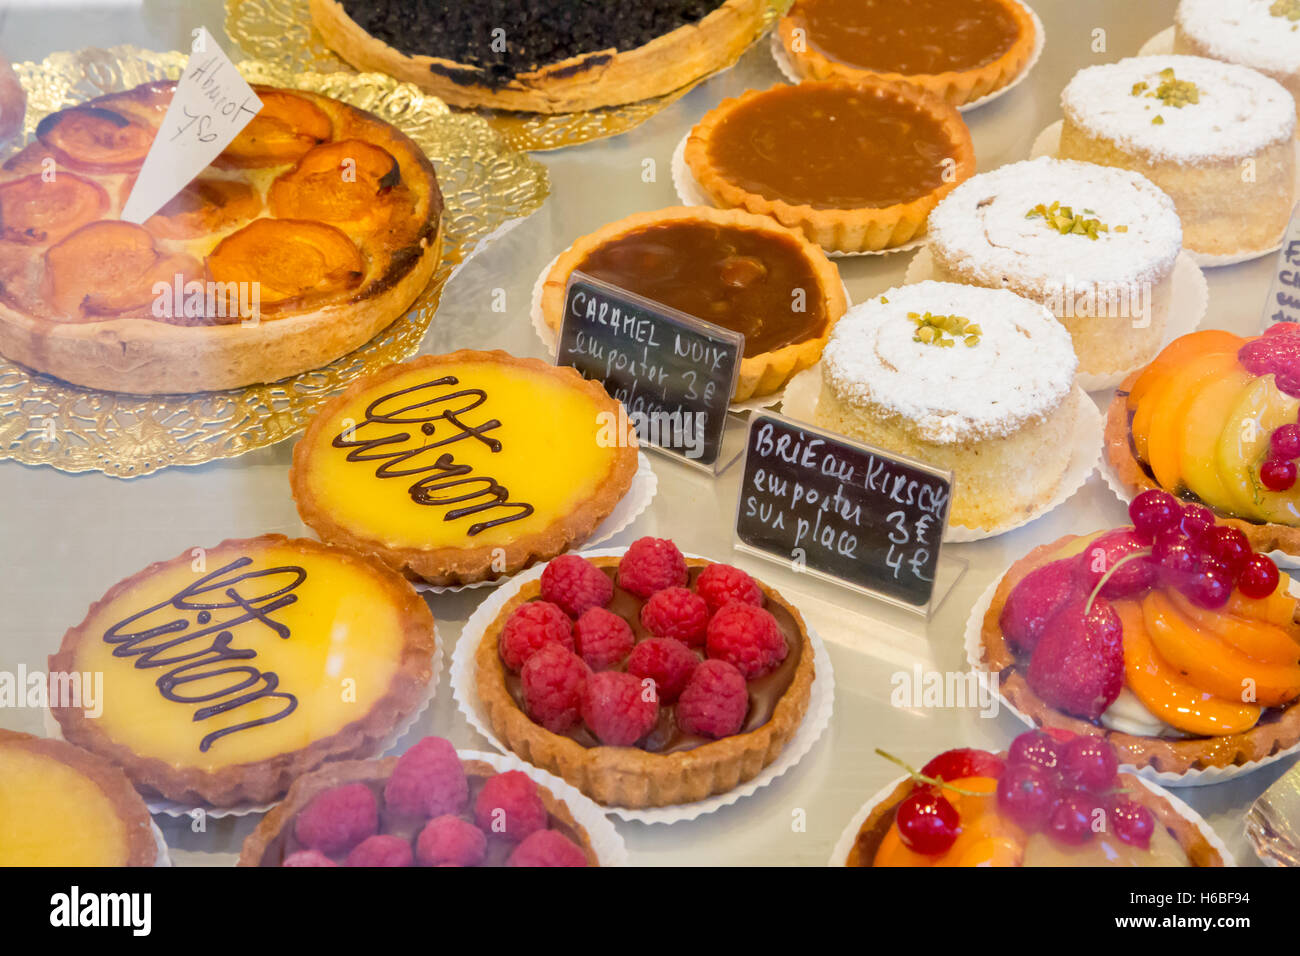 Tarts in a French patisserie shop window in Ribeaville, Alsace, France - Stock Image